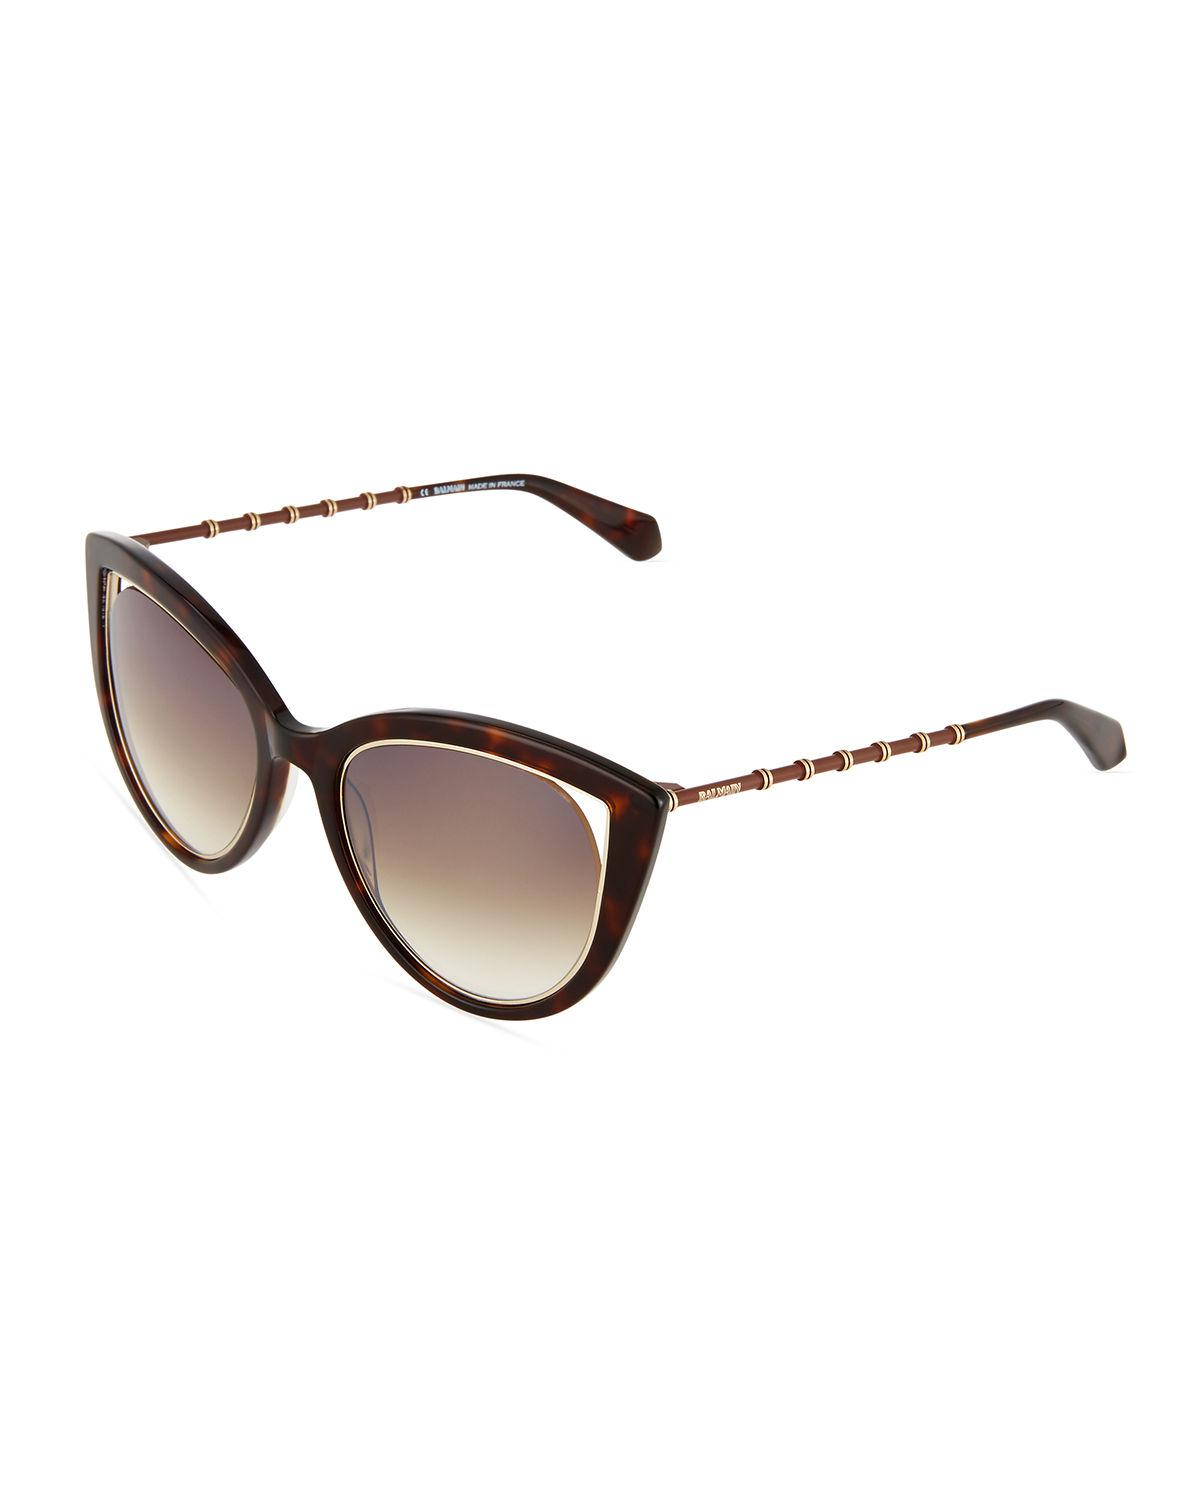 b27fba4cdb Balmain Two-tone Cat-eye Sunglasses in Black - Lyst